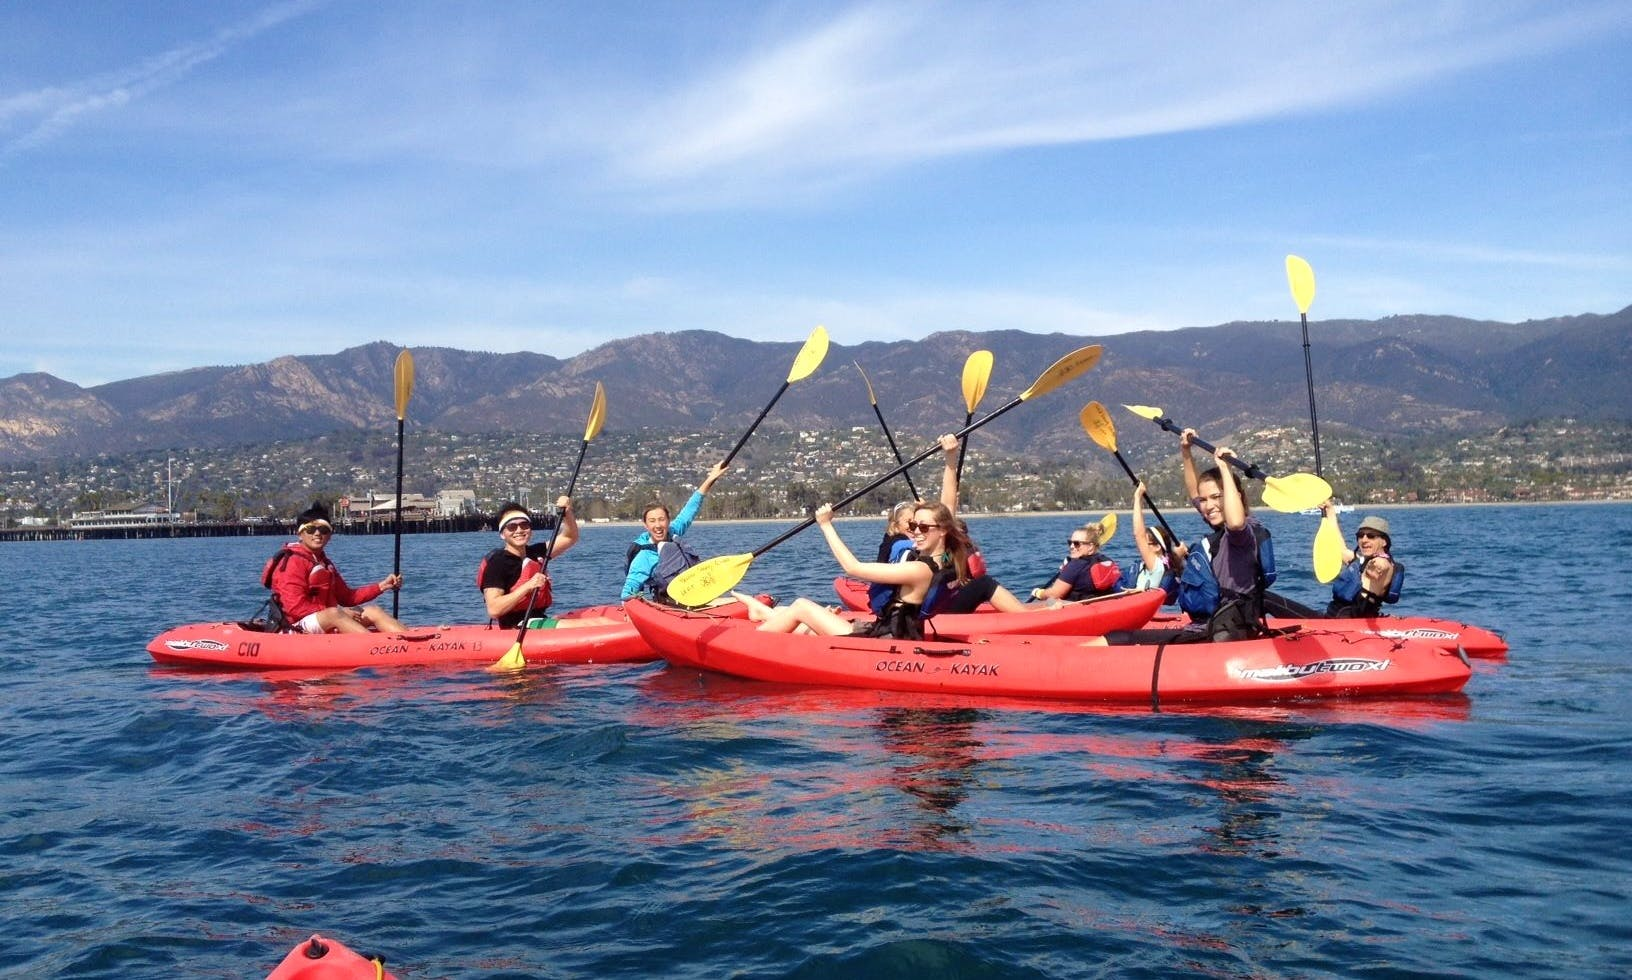 Hourly Kayak Rental on Santa Barbara Harbor, California